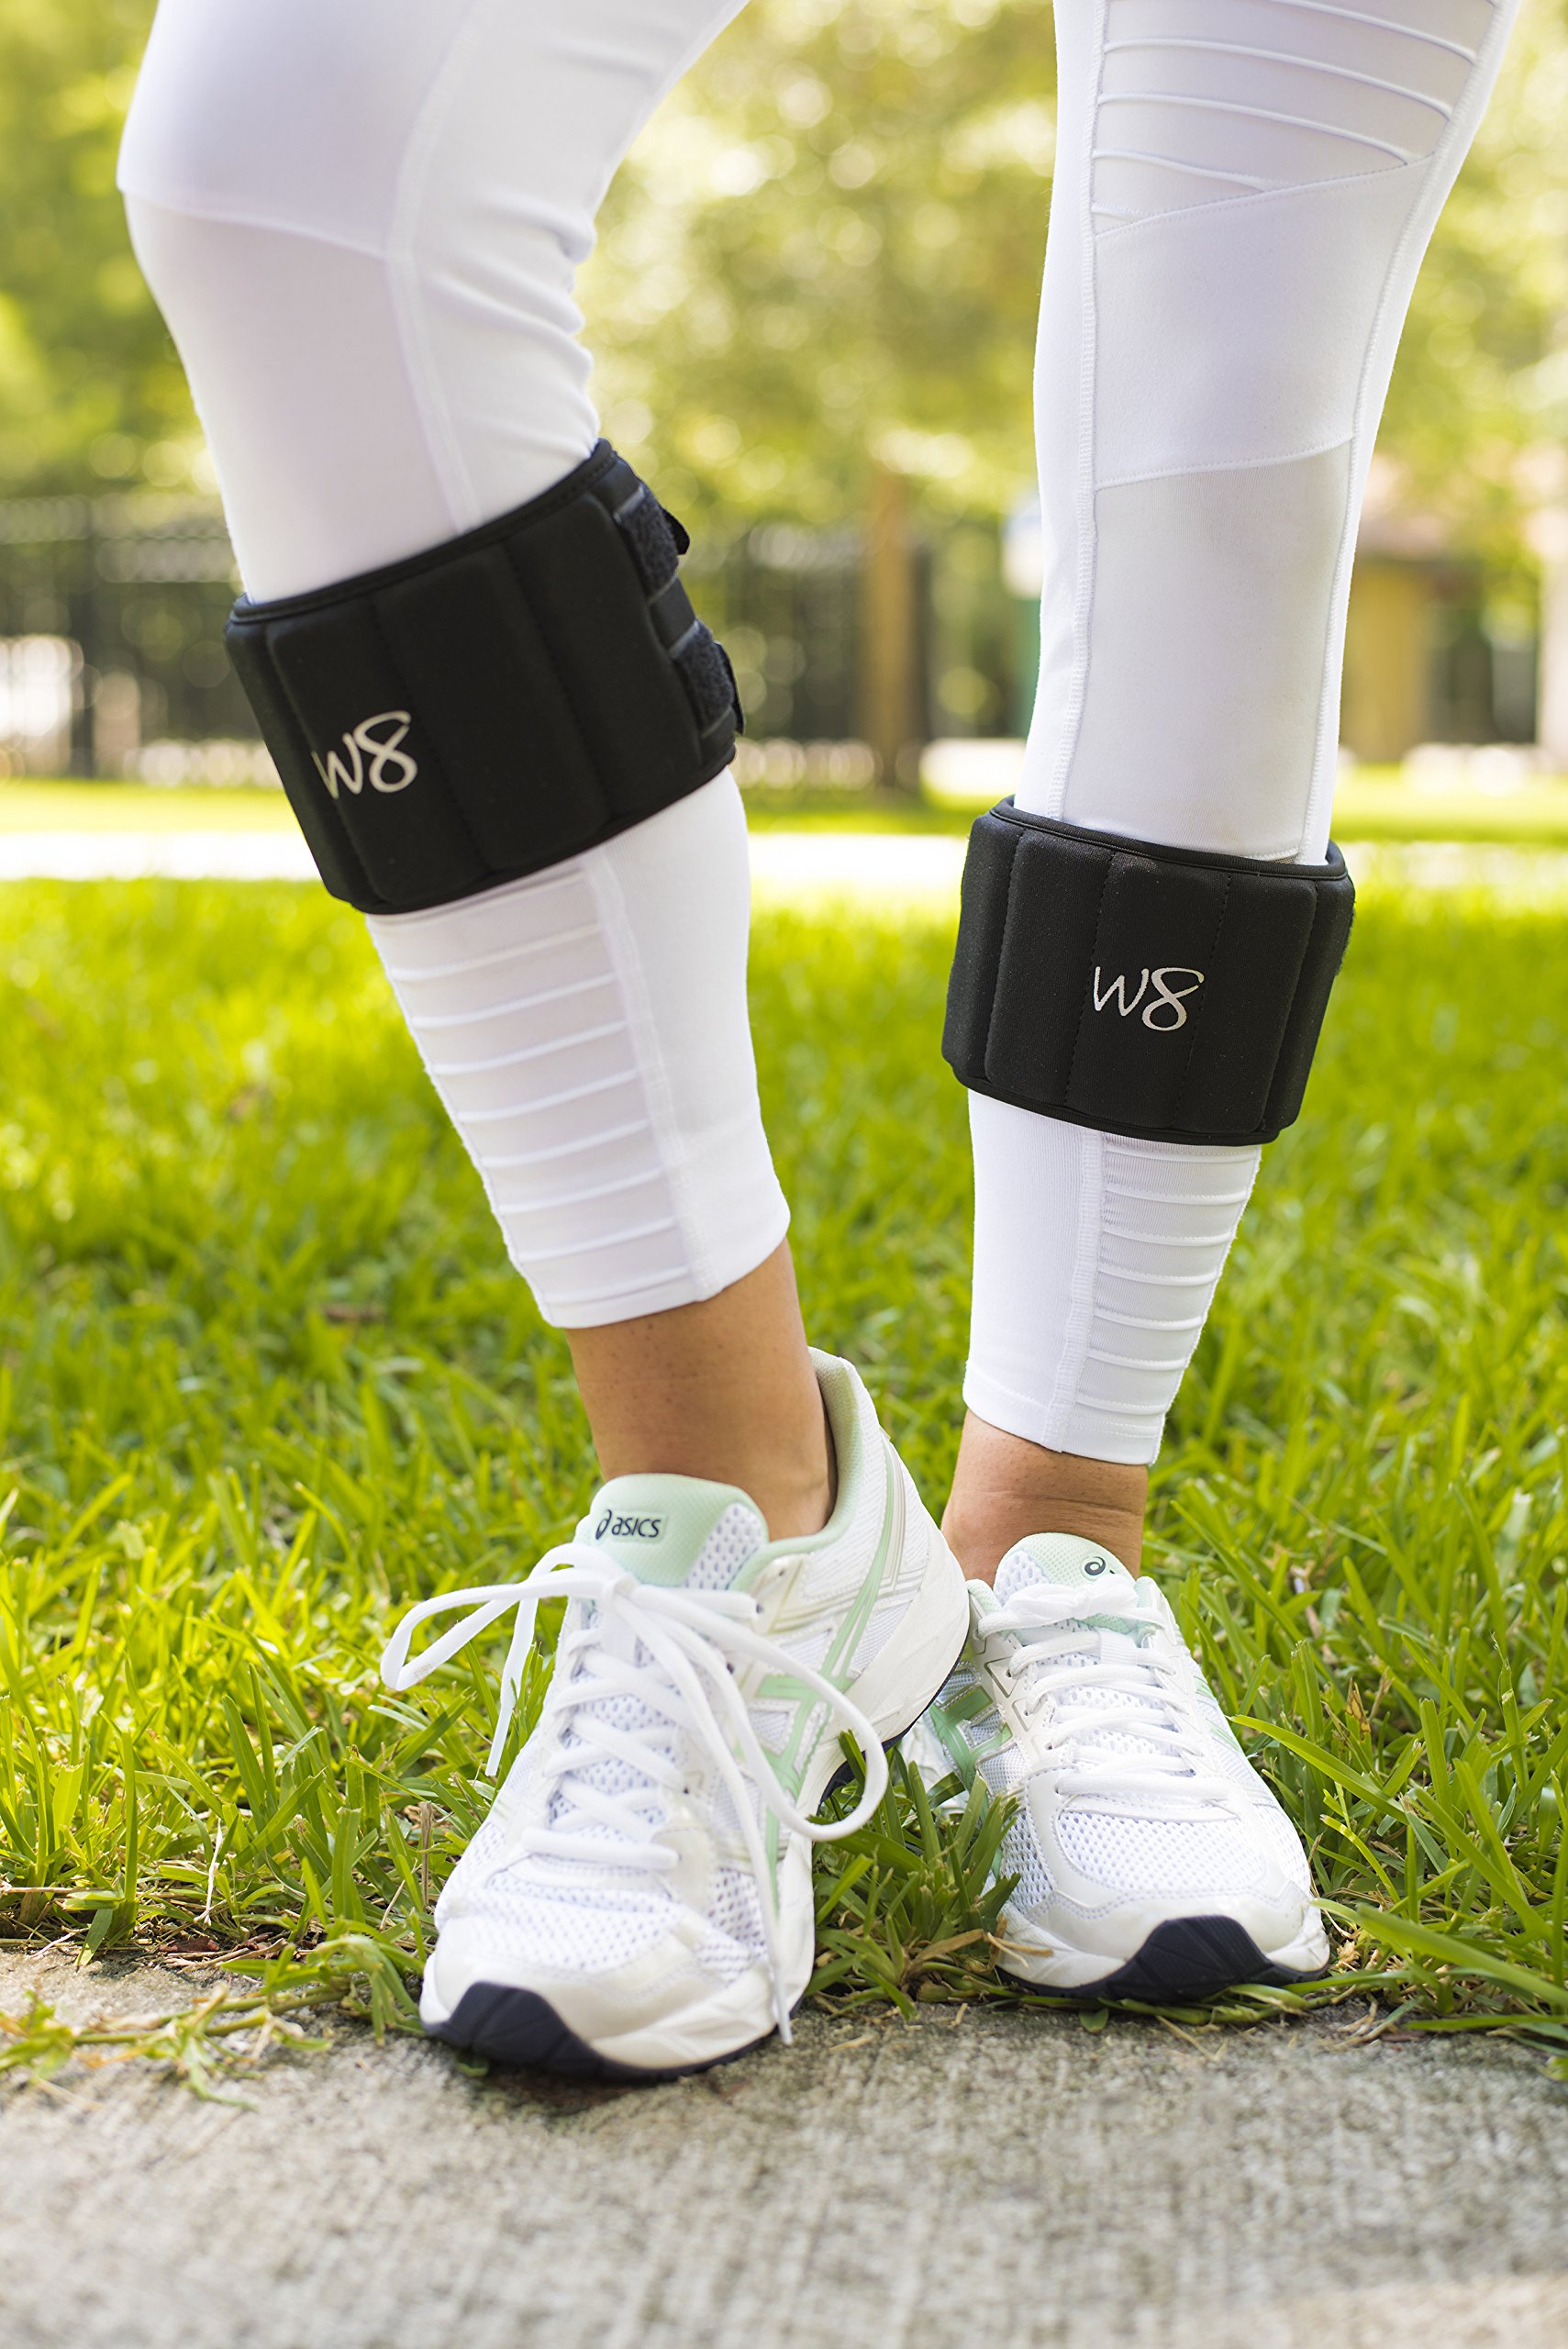 W8FIT Adjustable Ankle Leg Weights 1lb Set Small/Medium